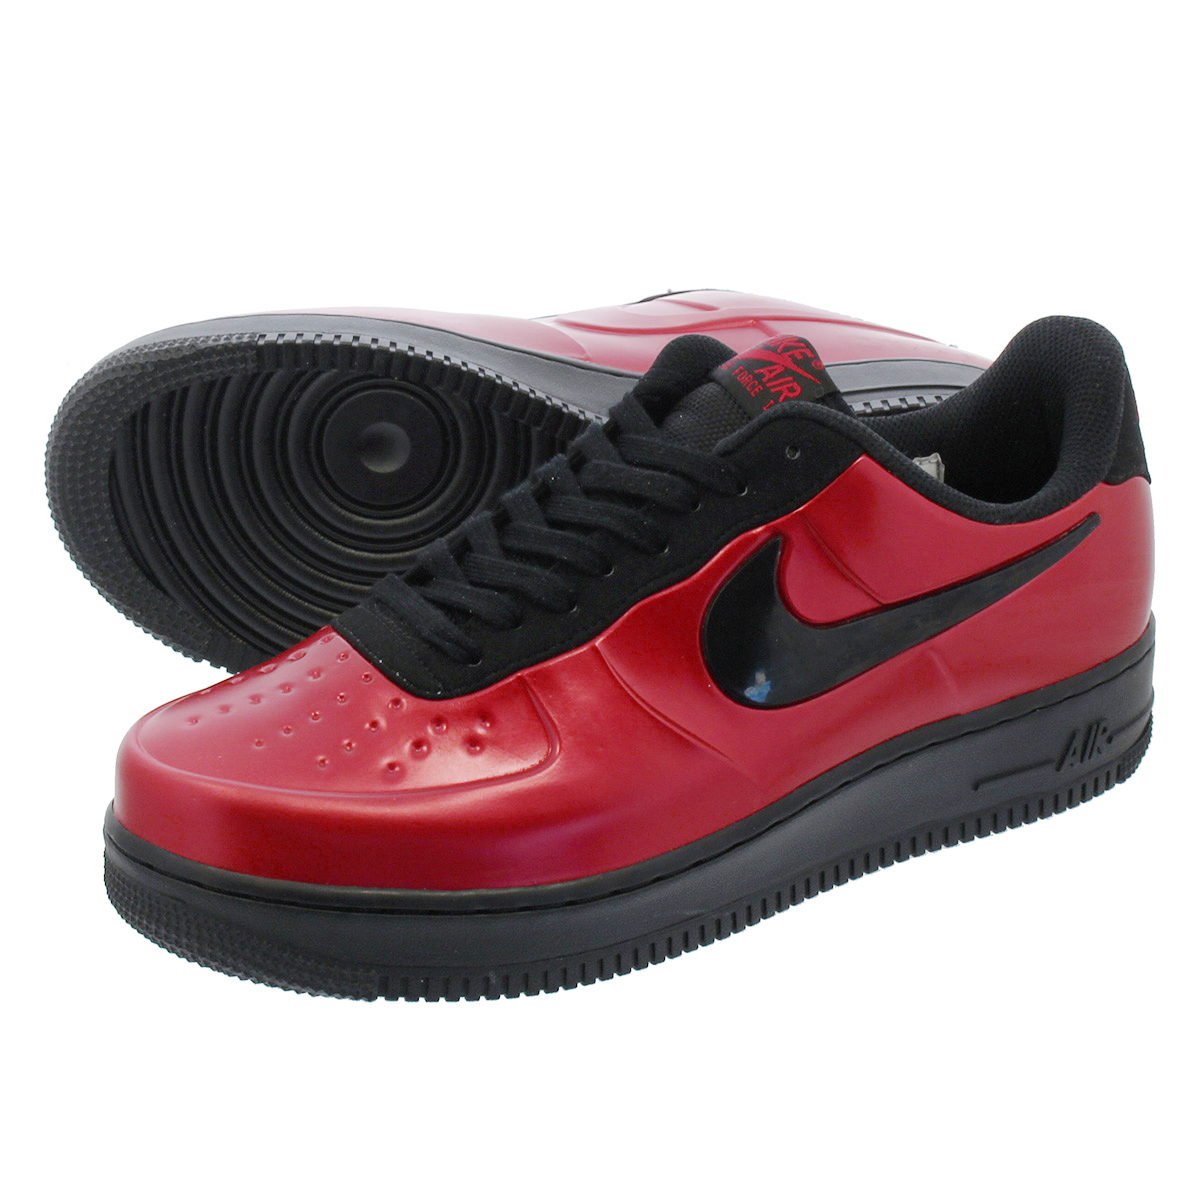 LOWTEX PLUS  NIKE AIR FORCE 1 FOAMPOSITE PRO CUP Nike air force 1  フォームポジットプロカップ GYM RED BLACK aj3664-601  ace8b5e354